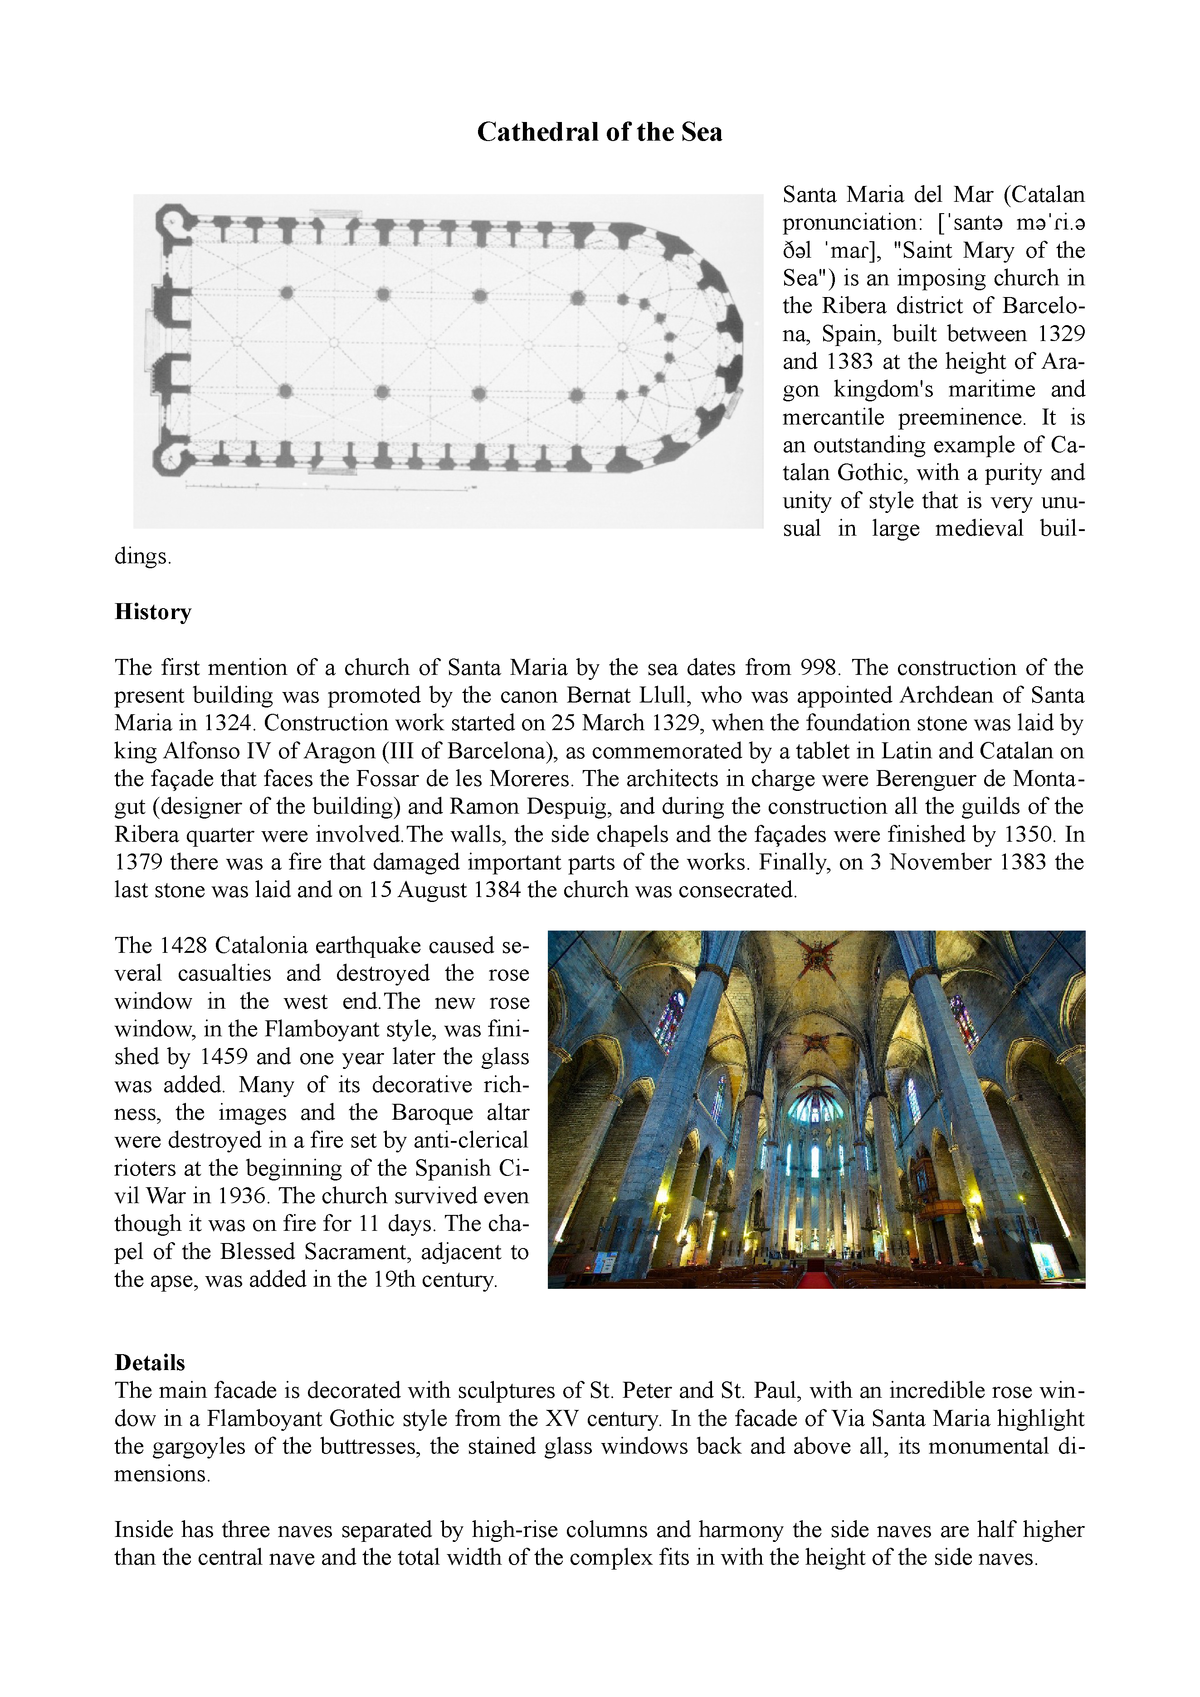 9 Saint Mary of the Sea - Barcelona Cathedral of the sea, history